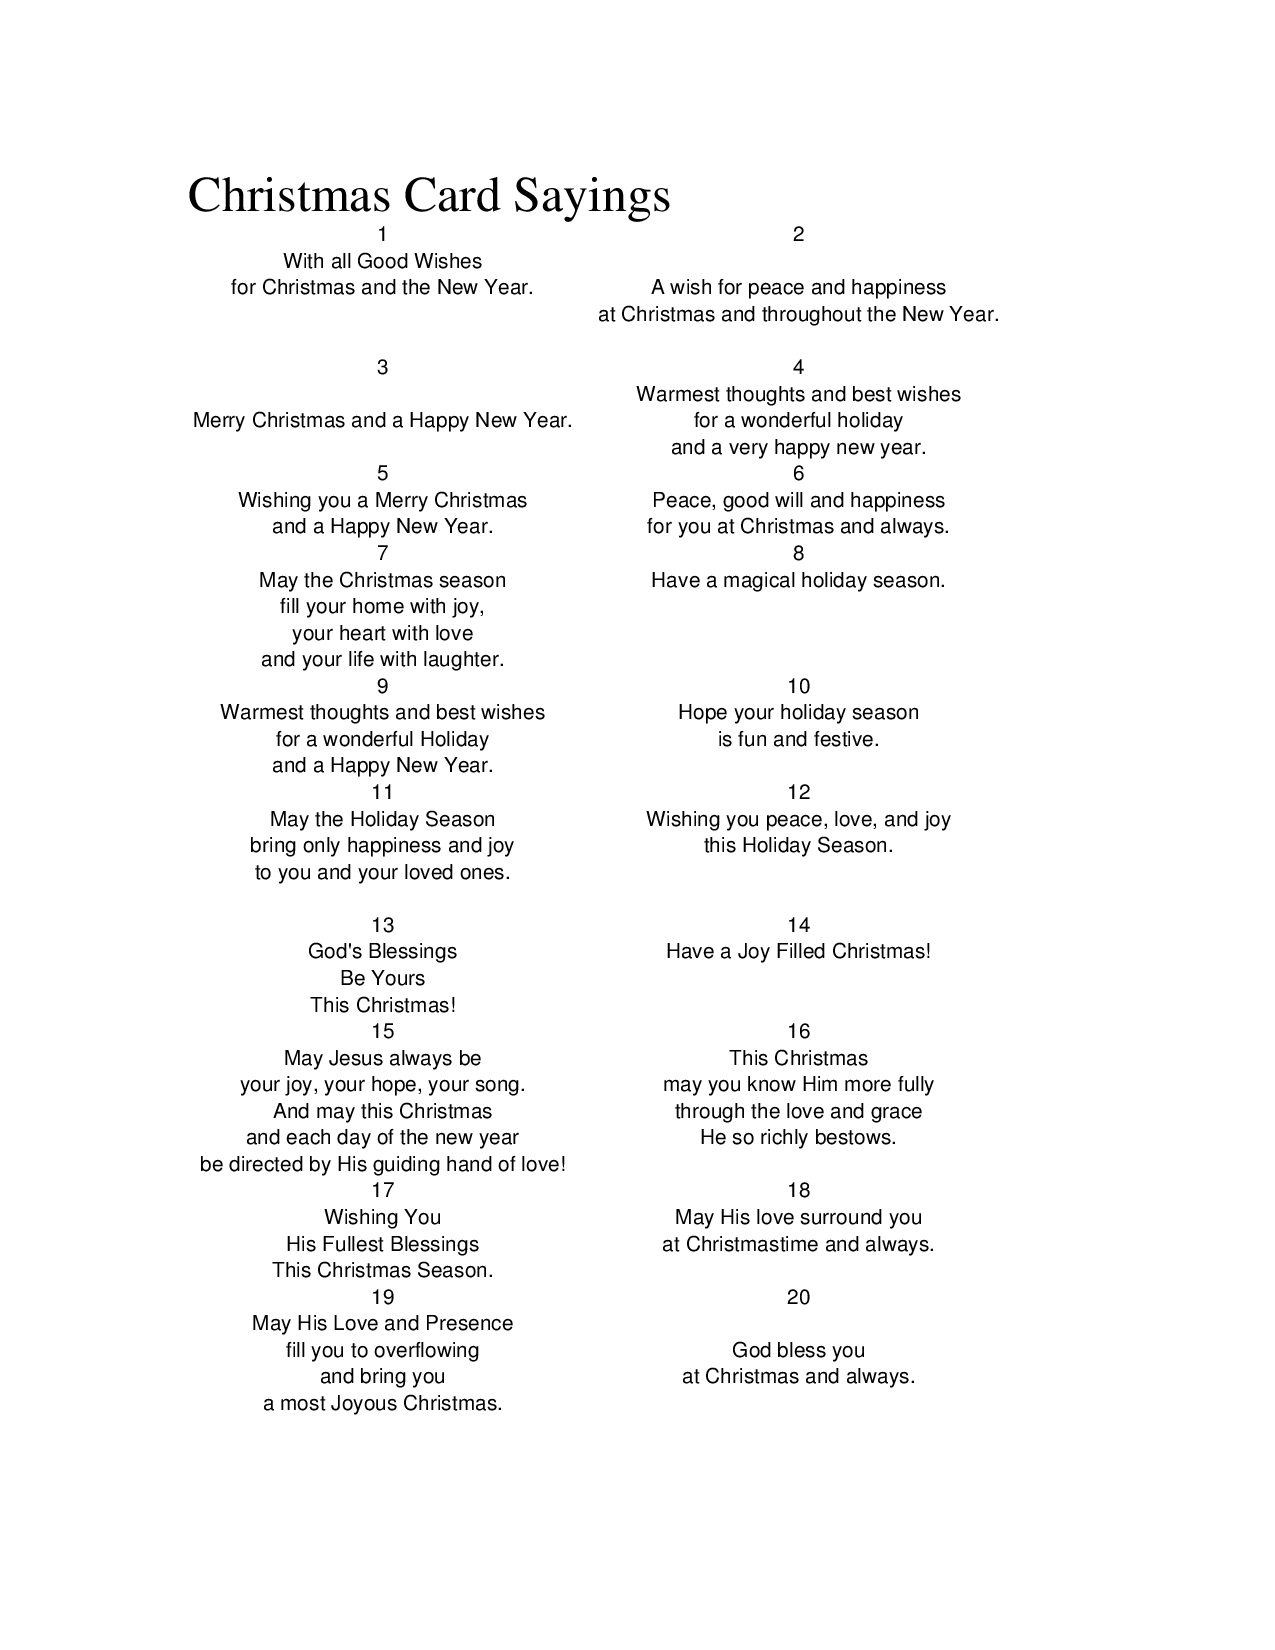 Christmas Greeting Card Verses and Sentiments - Funny Pictures ...